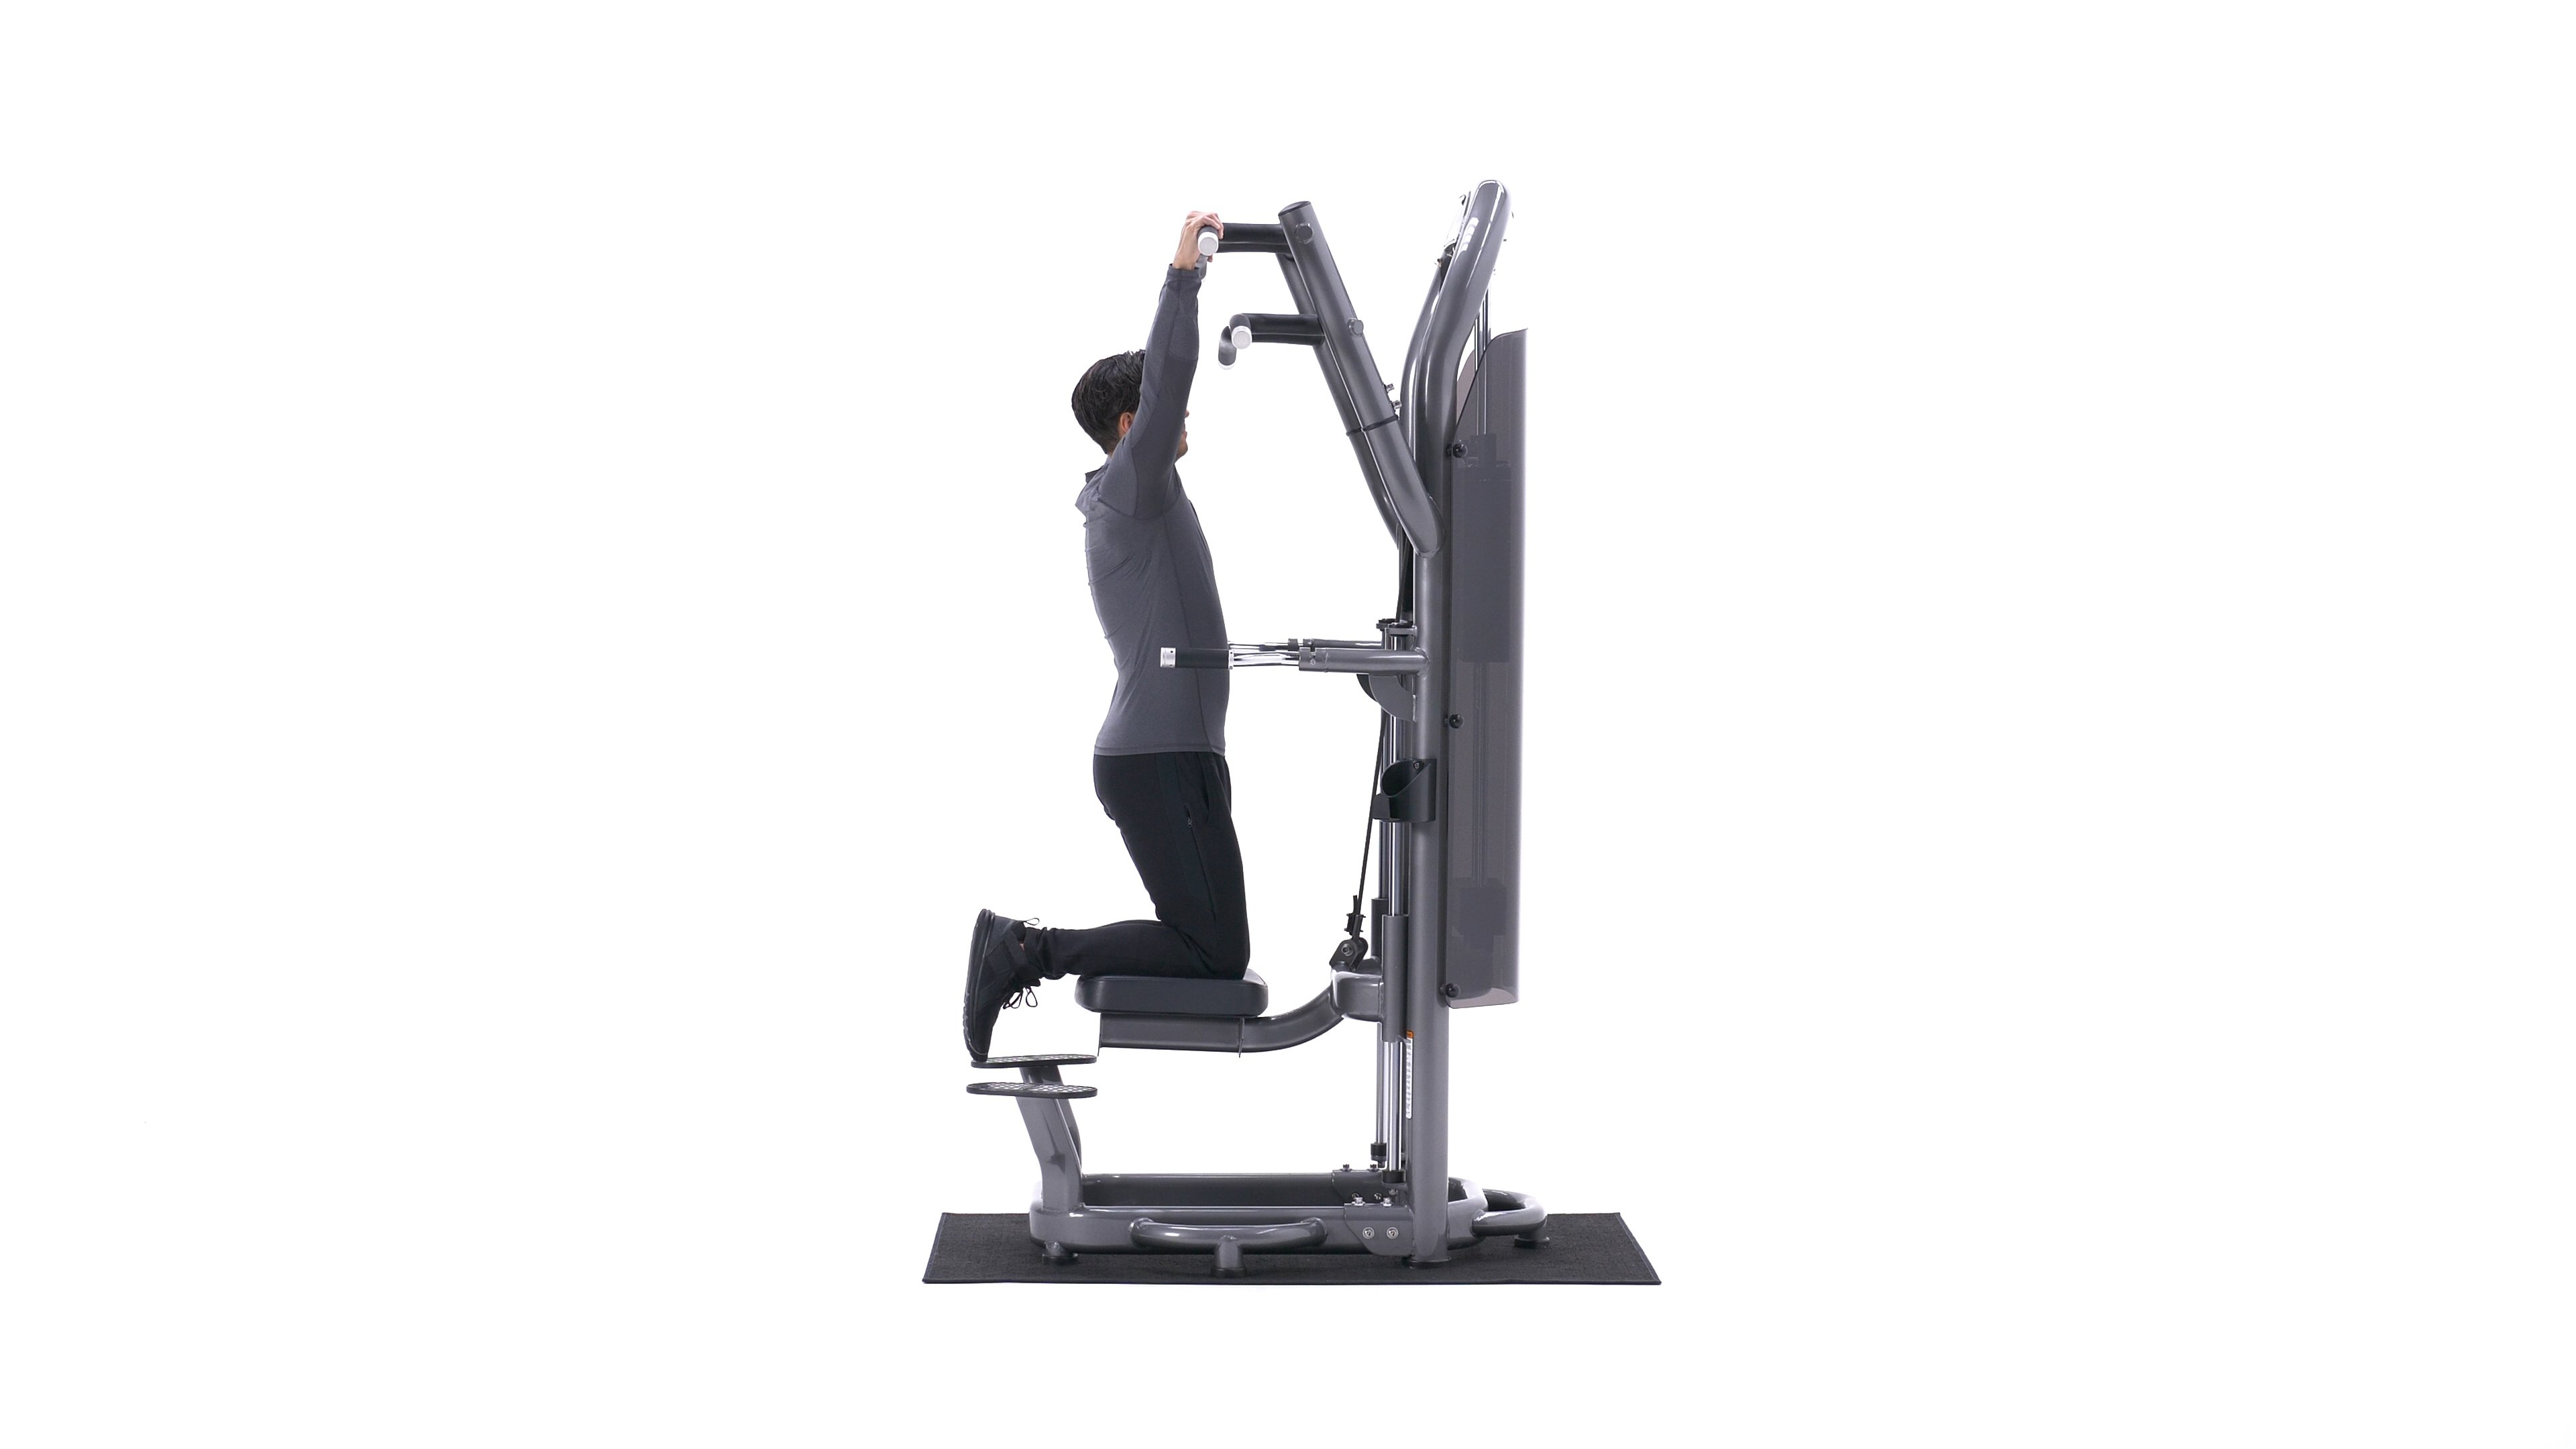 Machine-assisted pull-up image